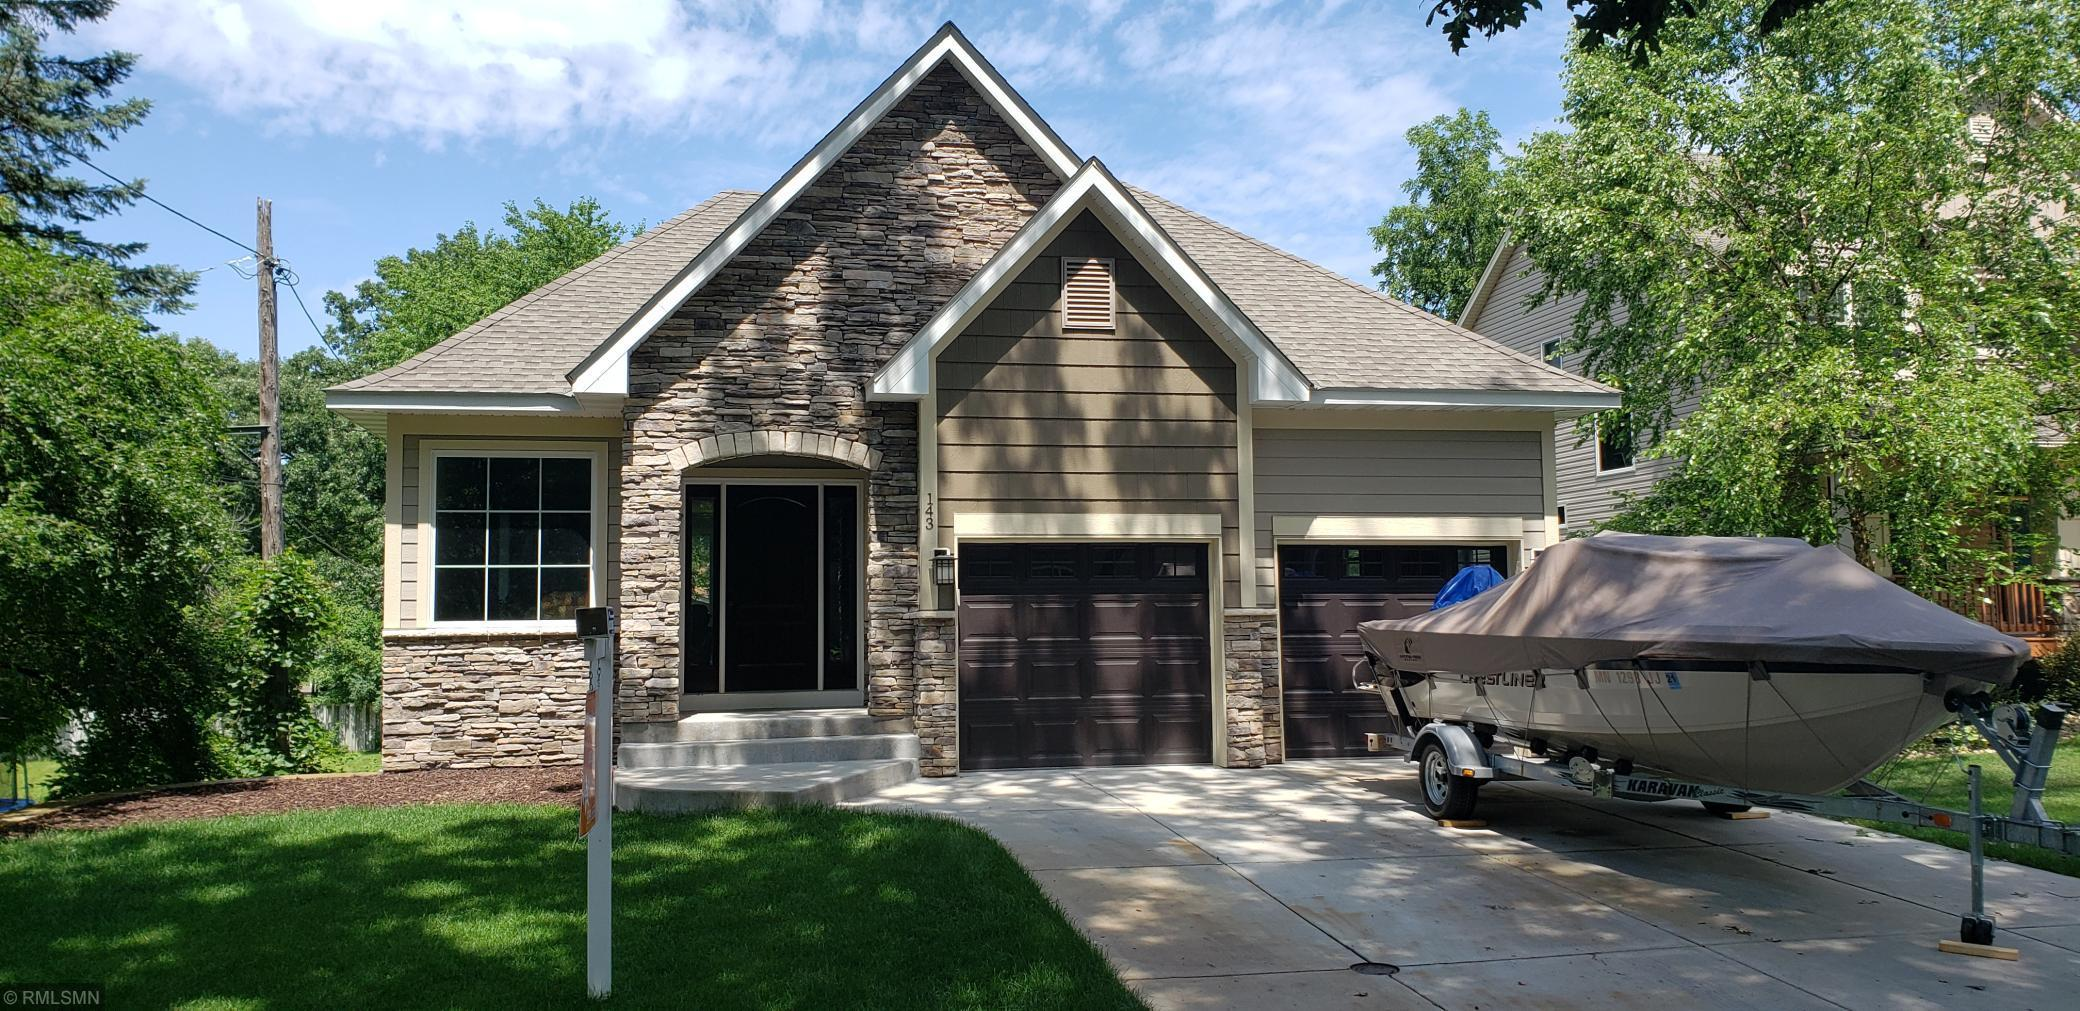 143 Ivy Property Photo - Mahtomedi, MN real estate listing